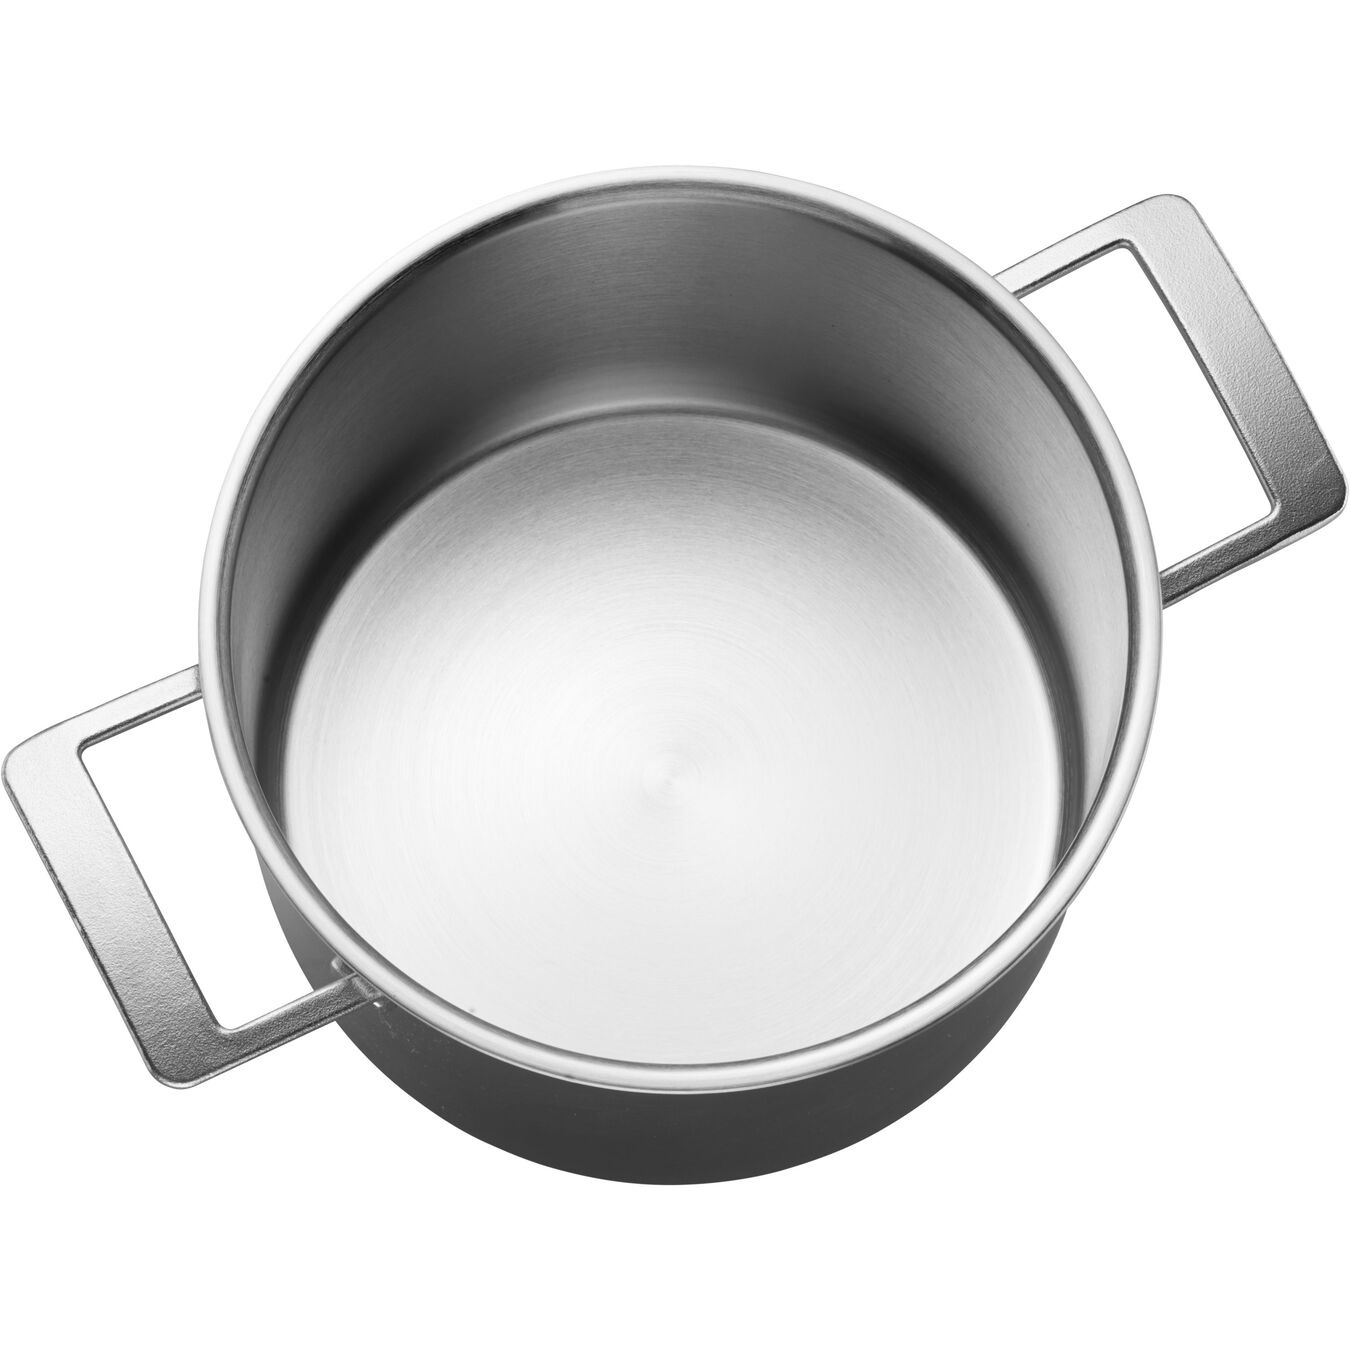 270.5-oz Stock pot with lid, 18/10 Stainless Steel ,,large 3